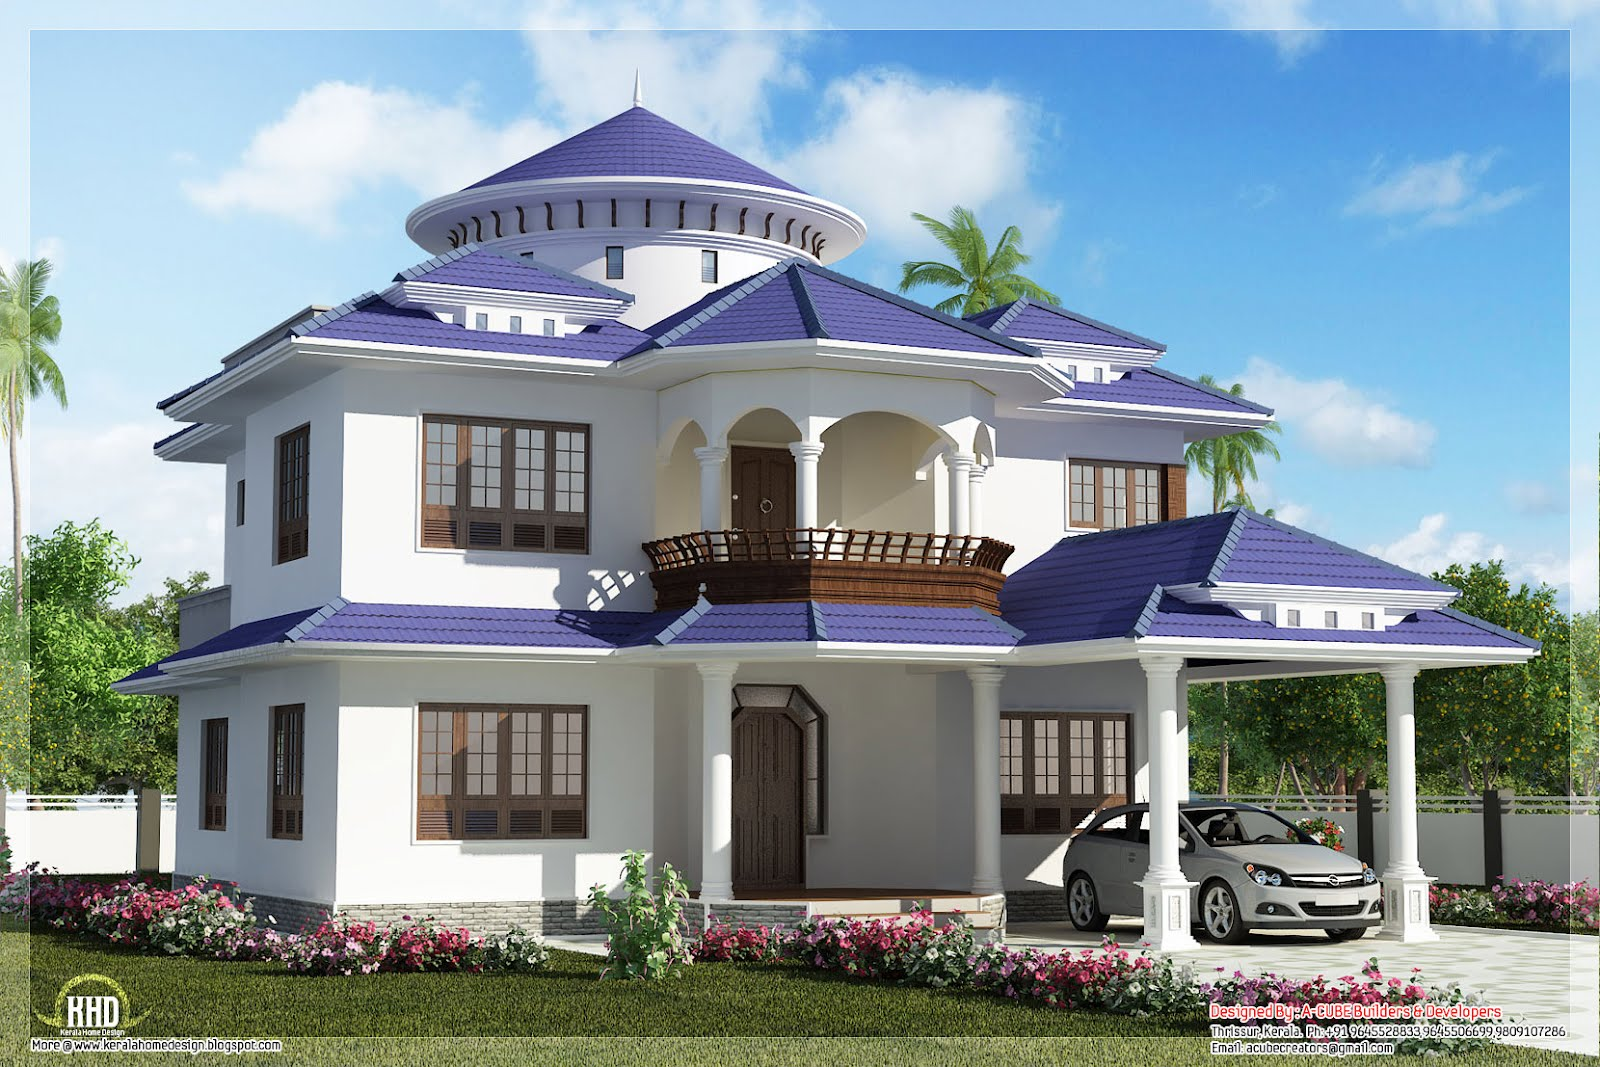 Dream home house design your dream home simple home plans and designs - Your dream home plans afford ...